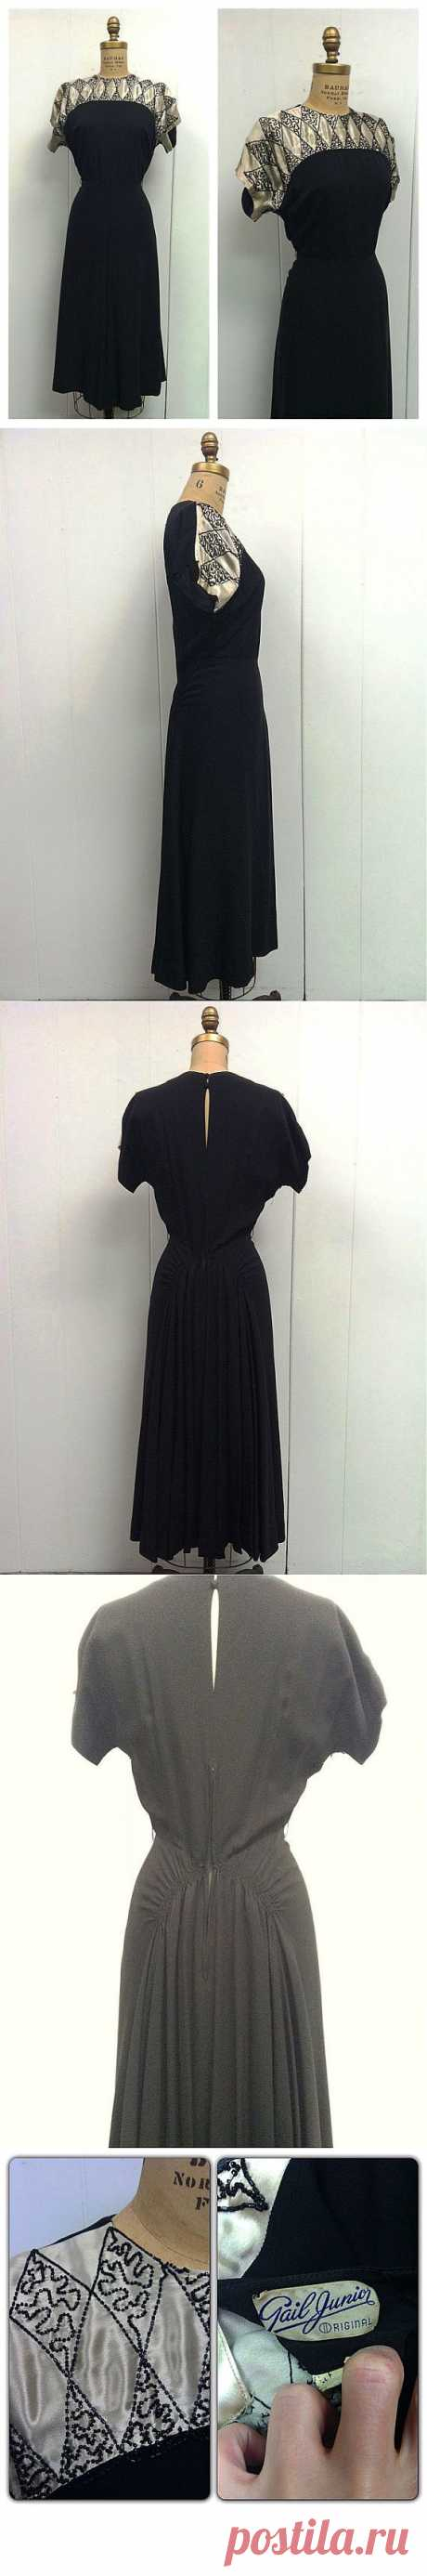 1940s Black Party Dress 40s от CreatedAndCollected на Etsy